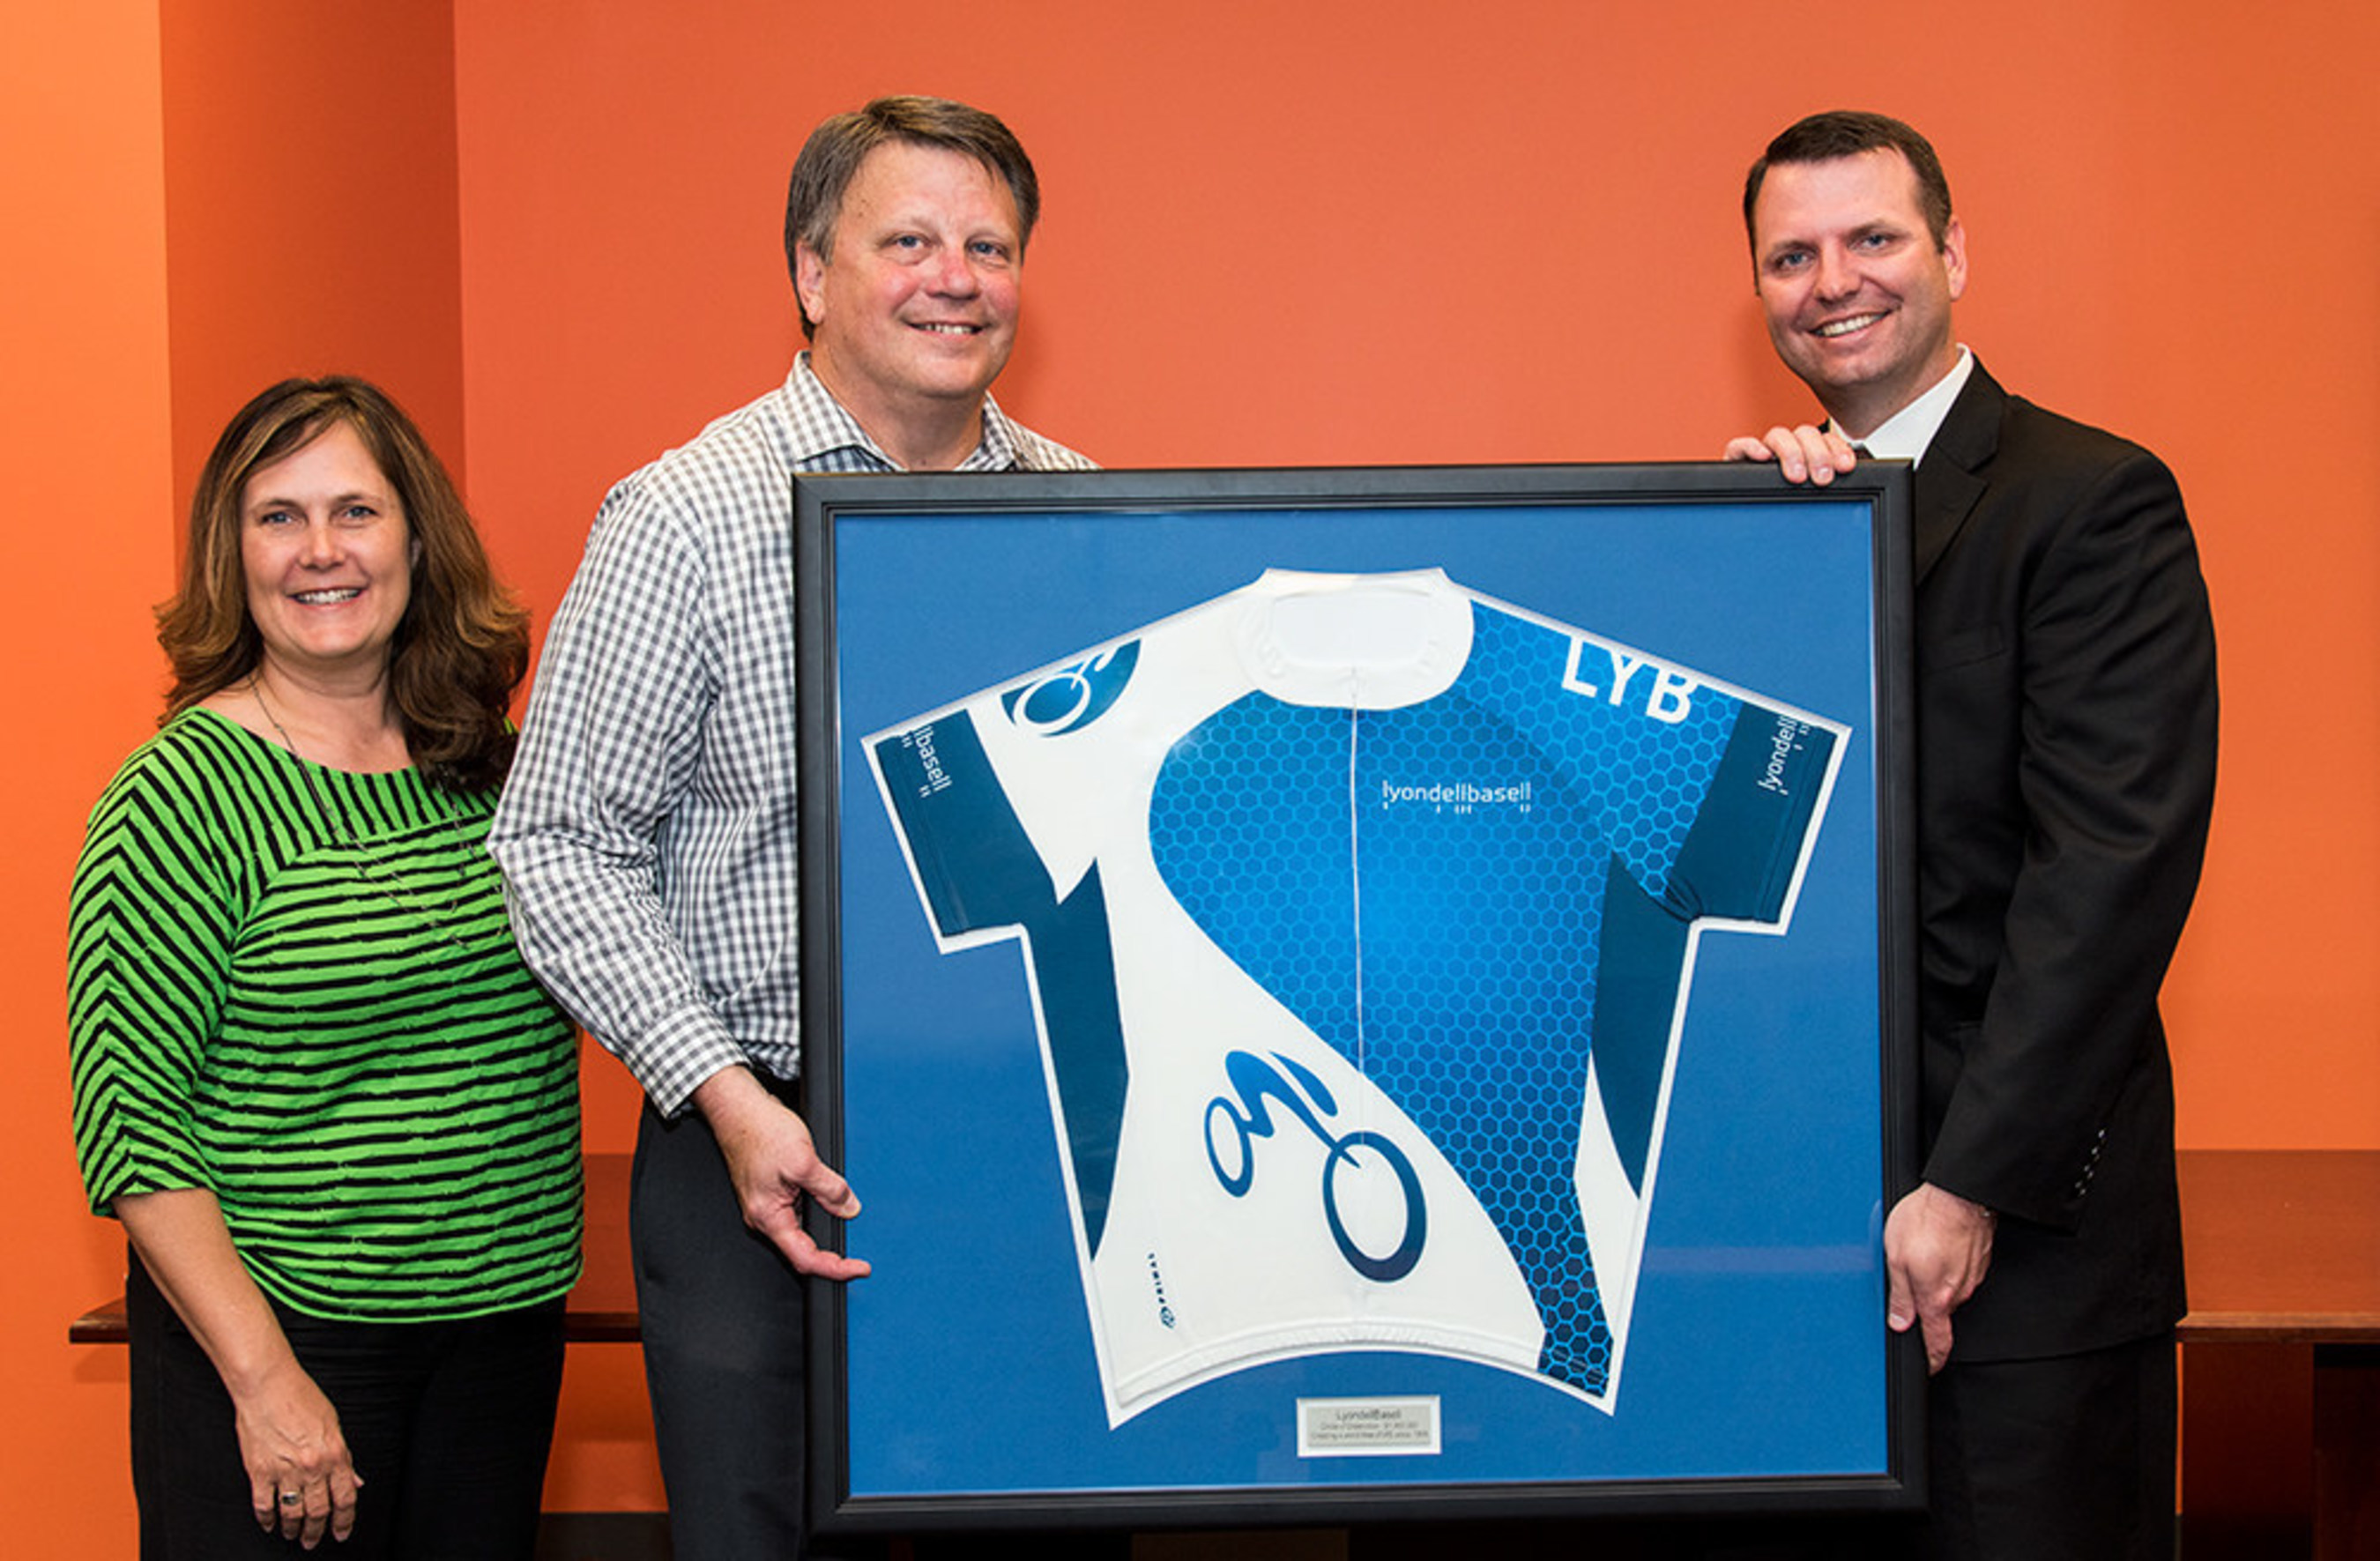 Kelli Dreiling, National MS Society vice president of development, and Mark Neagli, president of South Central Region MS Society, are presented with a LyondellBasell cycling team jersey from Jim Guilfoyle of LyondellBasell on Wednesday, April 27, 2016, in Houston. LyondellBasell received the Society's Circle of Distinction Award for raising $1.4 million through participation in the annual BP MS 150 bike ride. The jersey will hang in the Hall of Fame at the National MS Society offices in Houston.